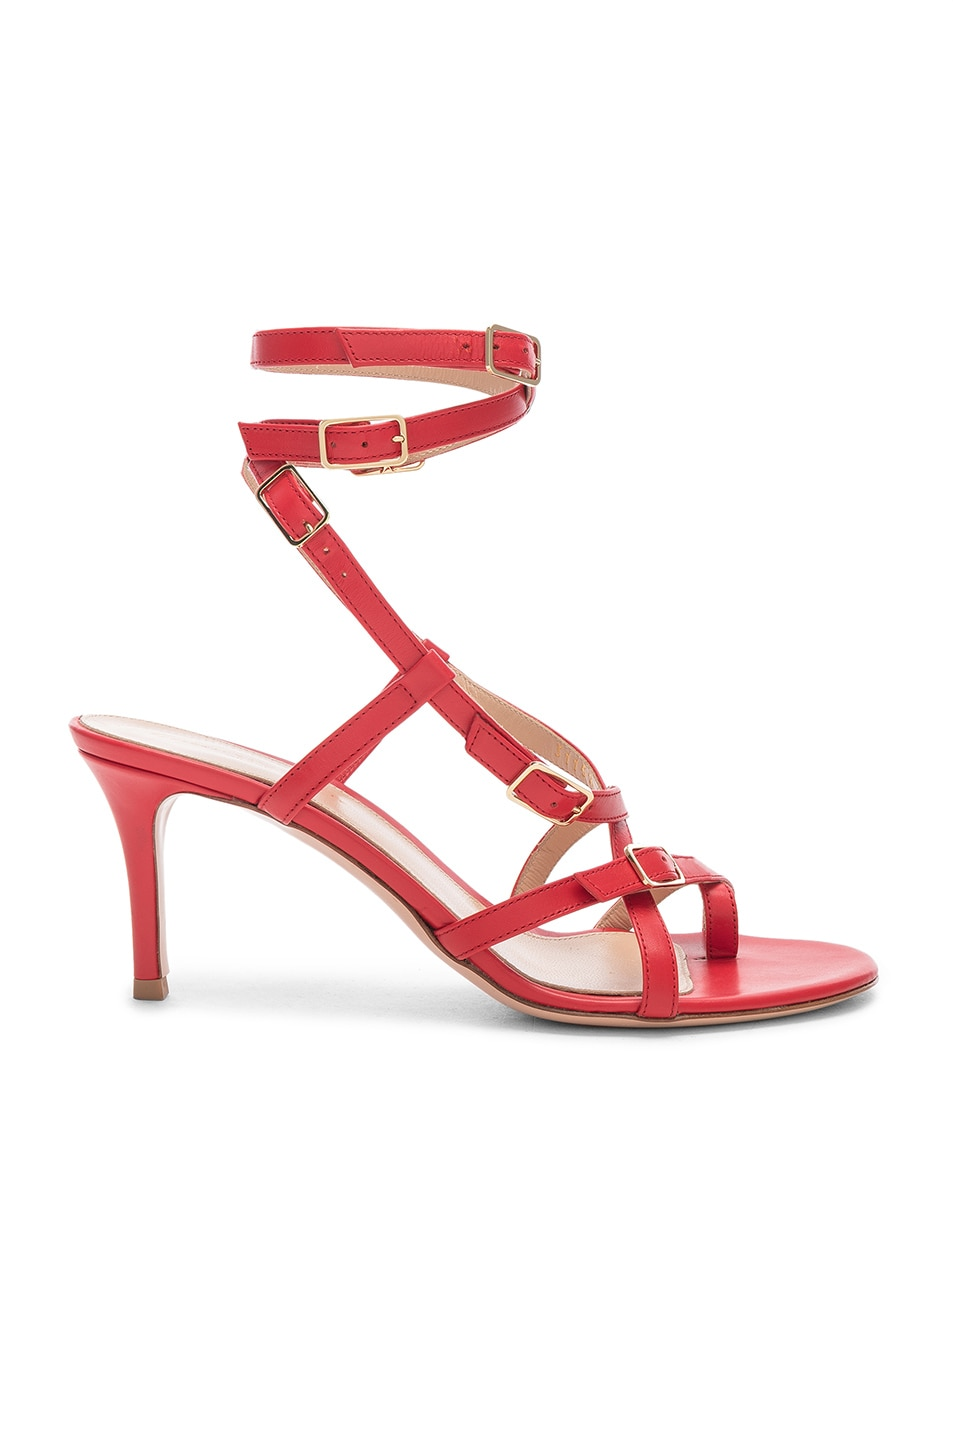 Image 1 of Gianvito Rossi Cory Buckle Strappy Heel in Tabasco Red